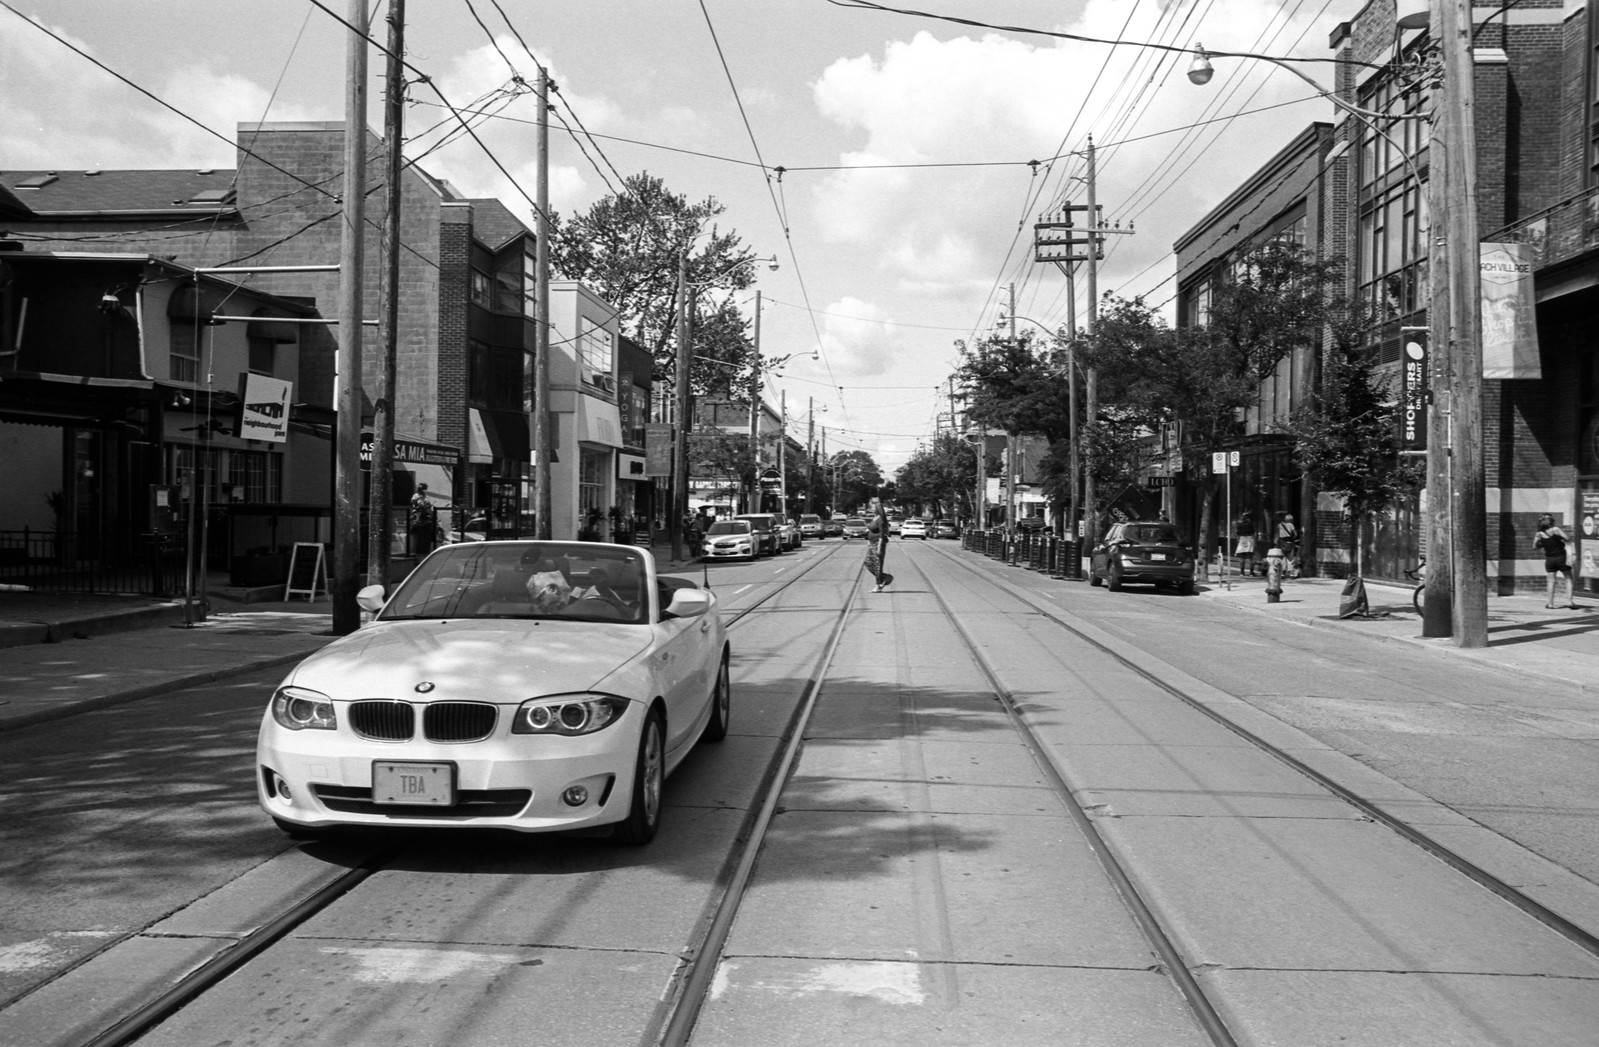 Middle of Quuen St. with a BMW